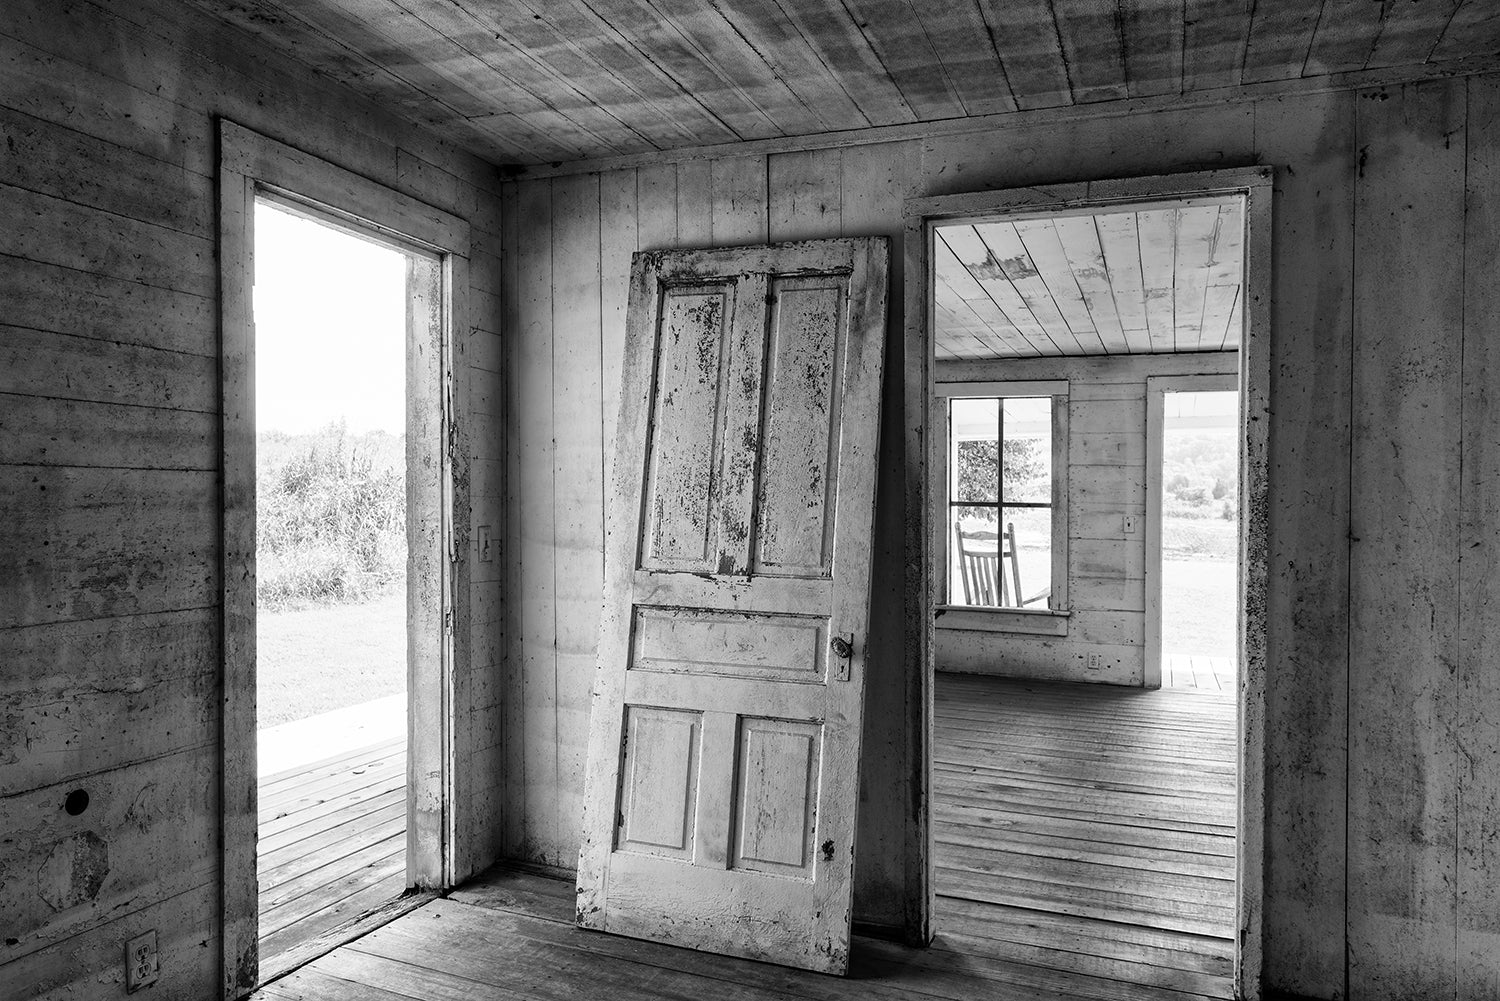 Inside an Abandoned Farm House - Black and White Photograph by Keith Dotson. Buy a fine art print here.